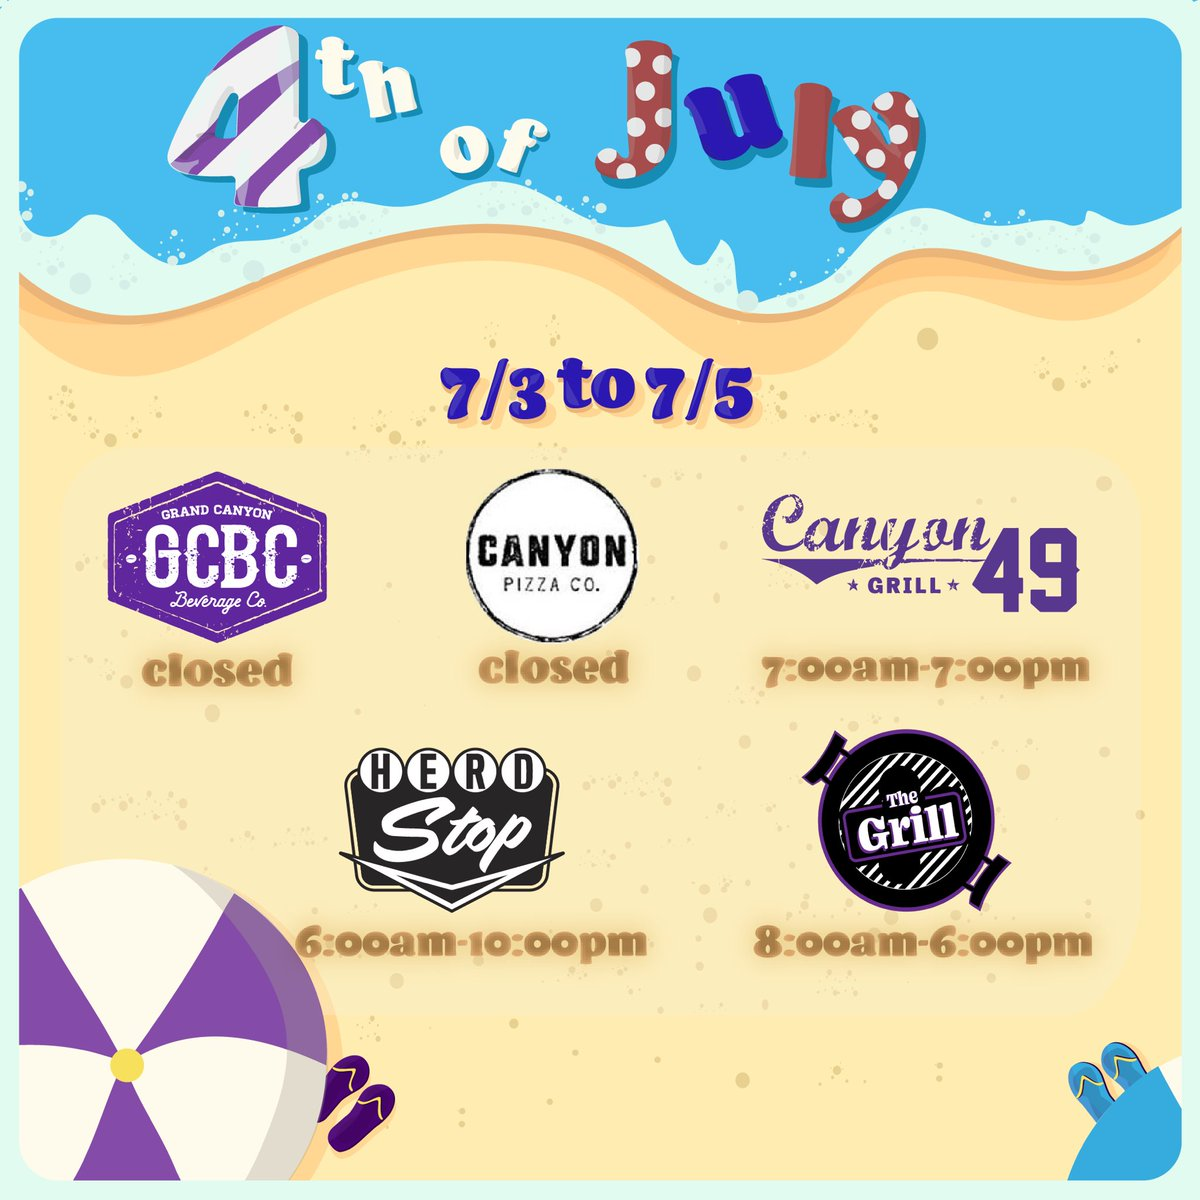 We hope you're staying cool this summer, Lopes! Here are the hours of operation from this Friday to Sunday #lopesup 💜 @GCU https://t.co/omjzCSqlUN